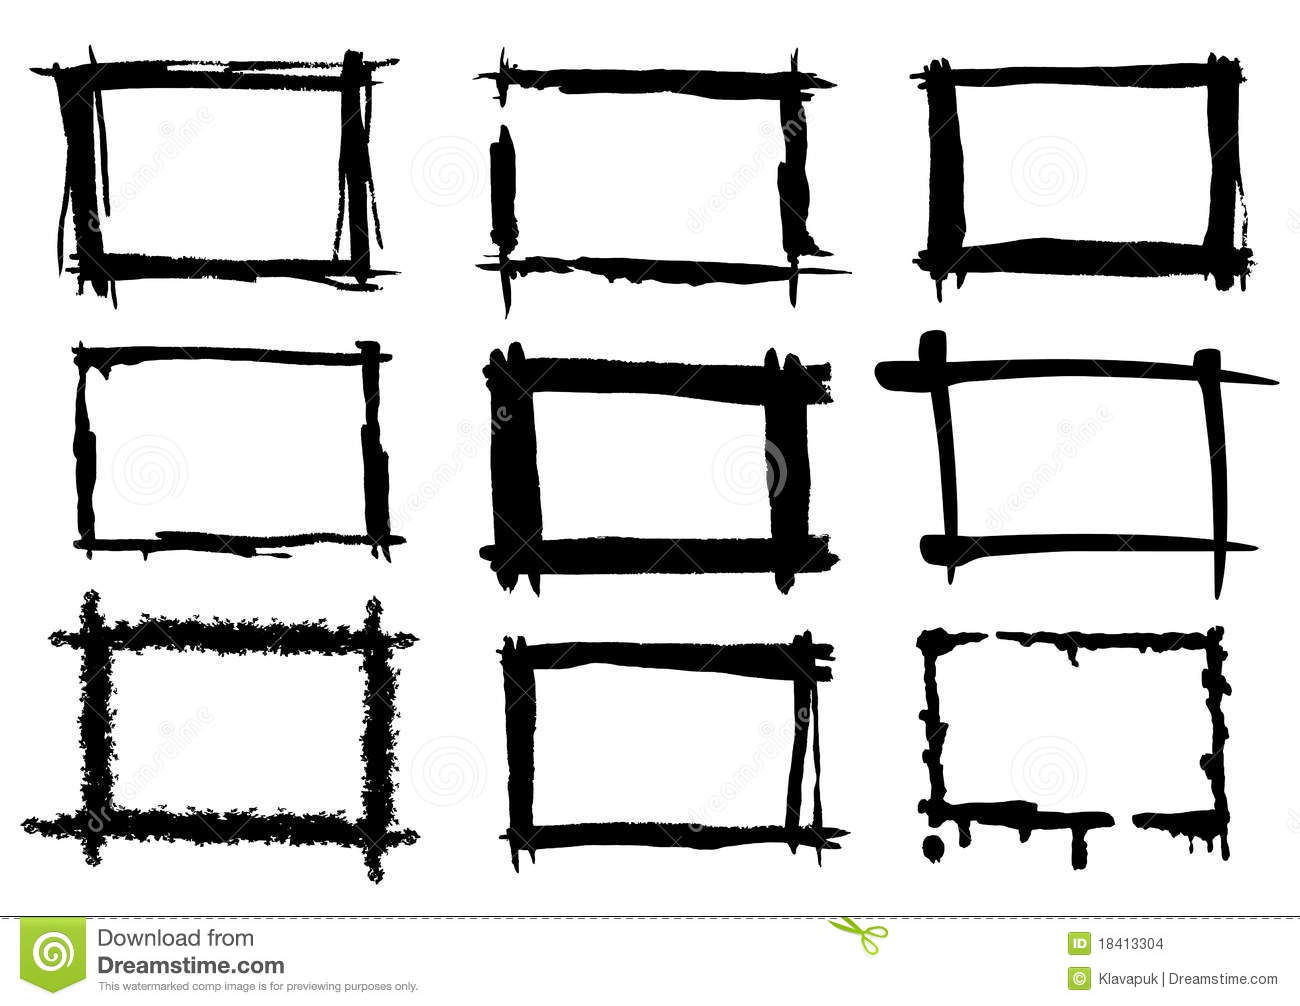 Paint frames stock vector. Illustration of sketch, image - 18413304